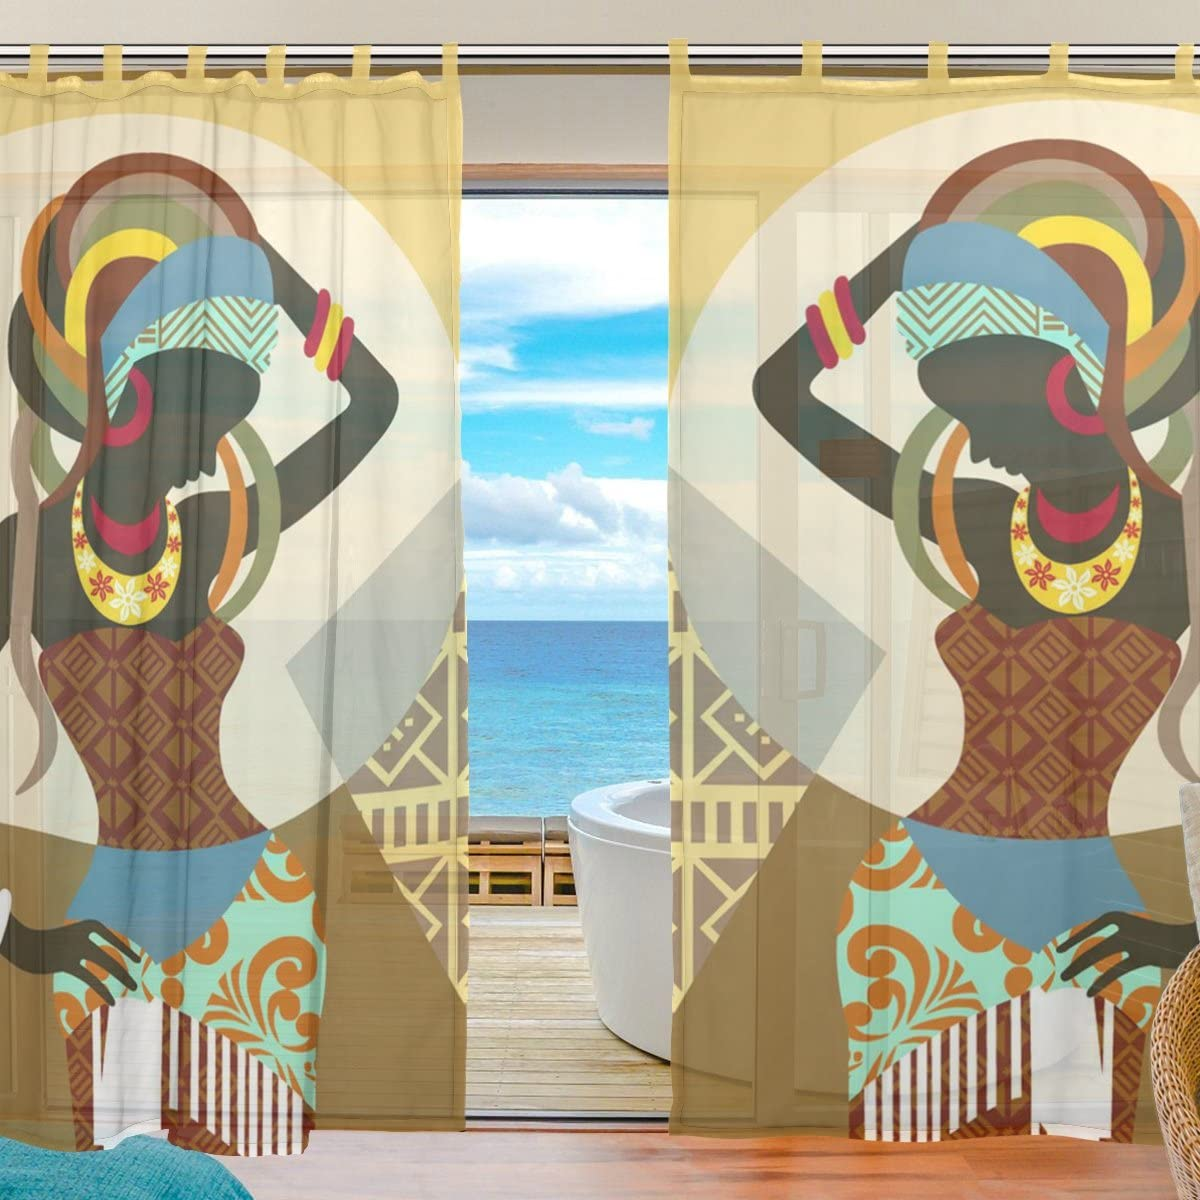 INGBAGS 2 PCS Bedroom Decor Living Room Decorations African Art Women Pattern Print Tulle Polyester Door Window Gauze Sheer Curtain Drape Two Panels Set 55×78 inch,Set of 2